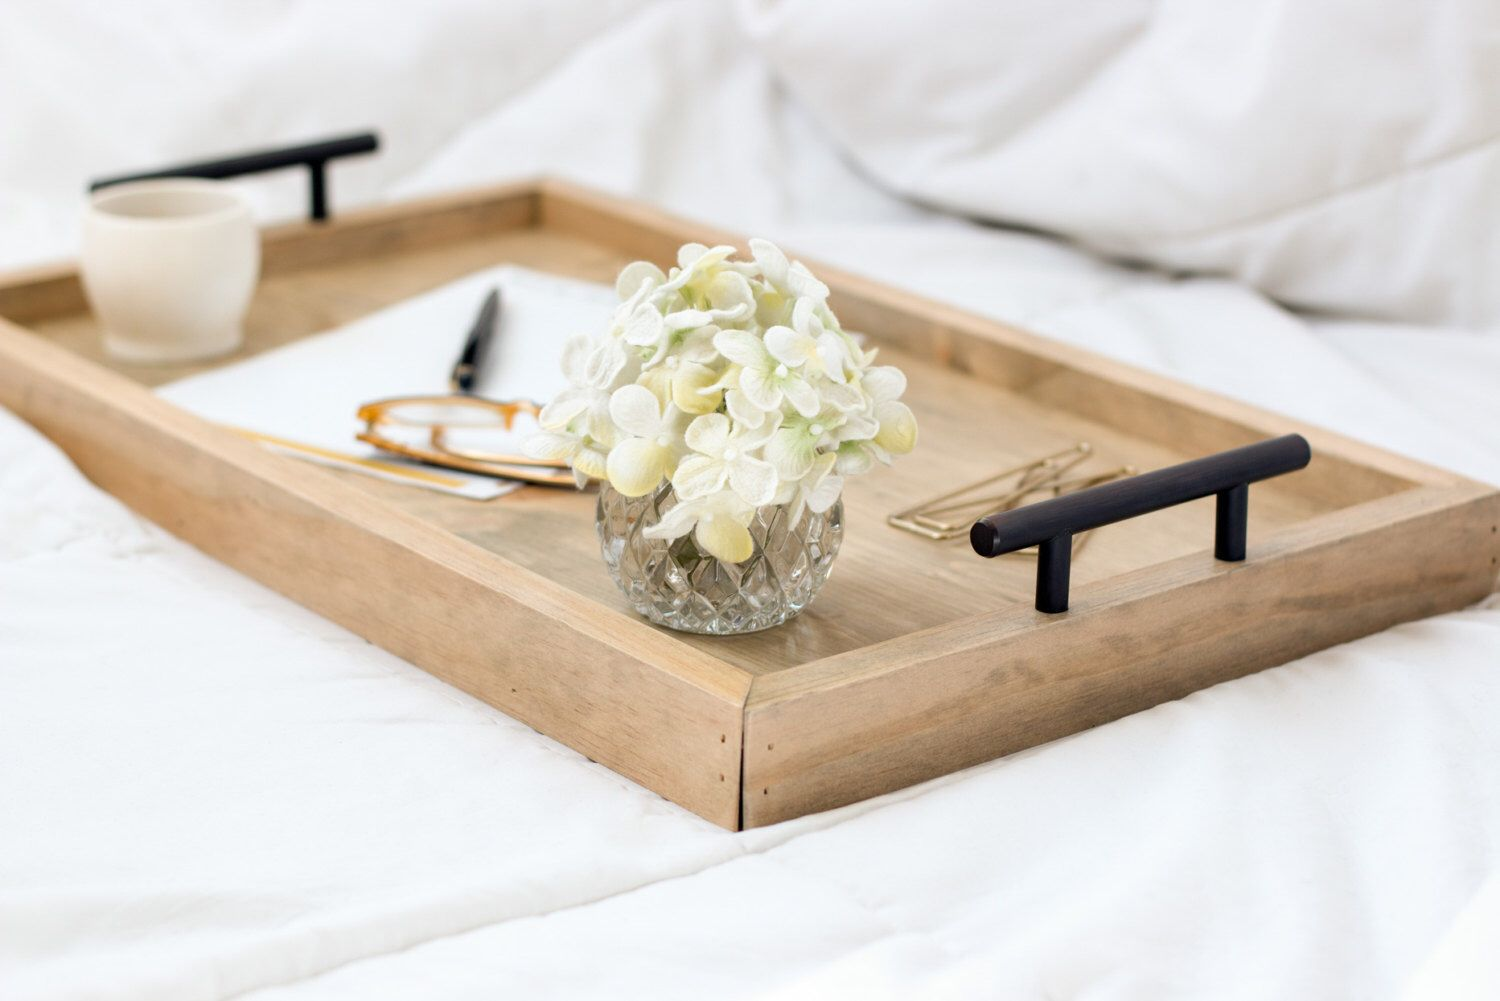 Breakfast Trays For Bed Simple Serving Tray Wood Serving Tray Breakfast Tray Housewarming Gift Inspiration Design